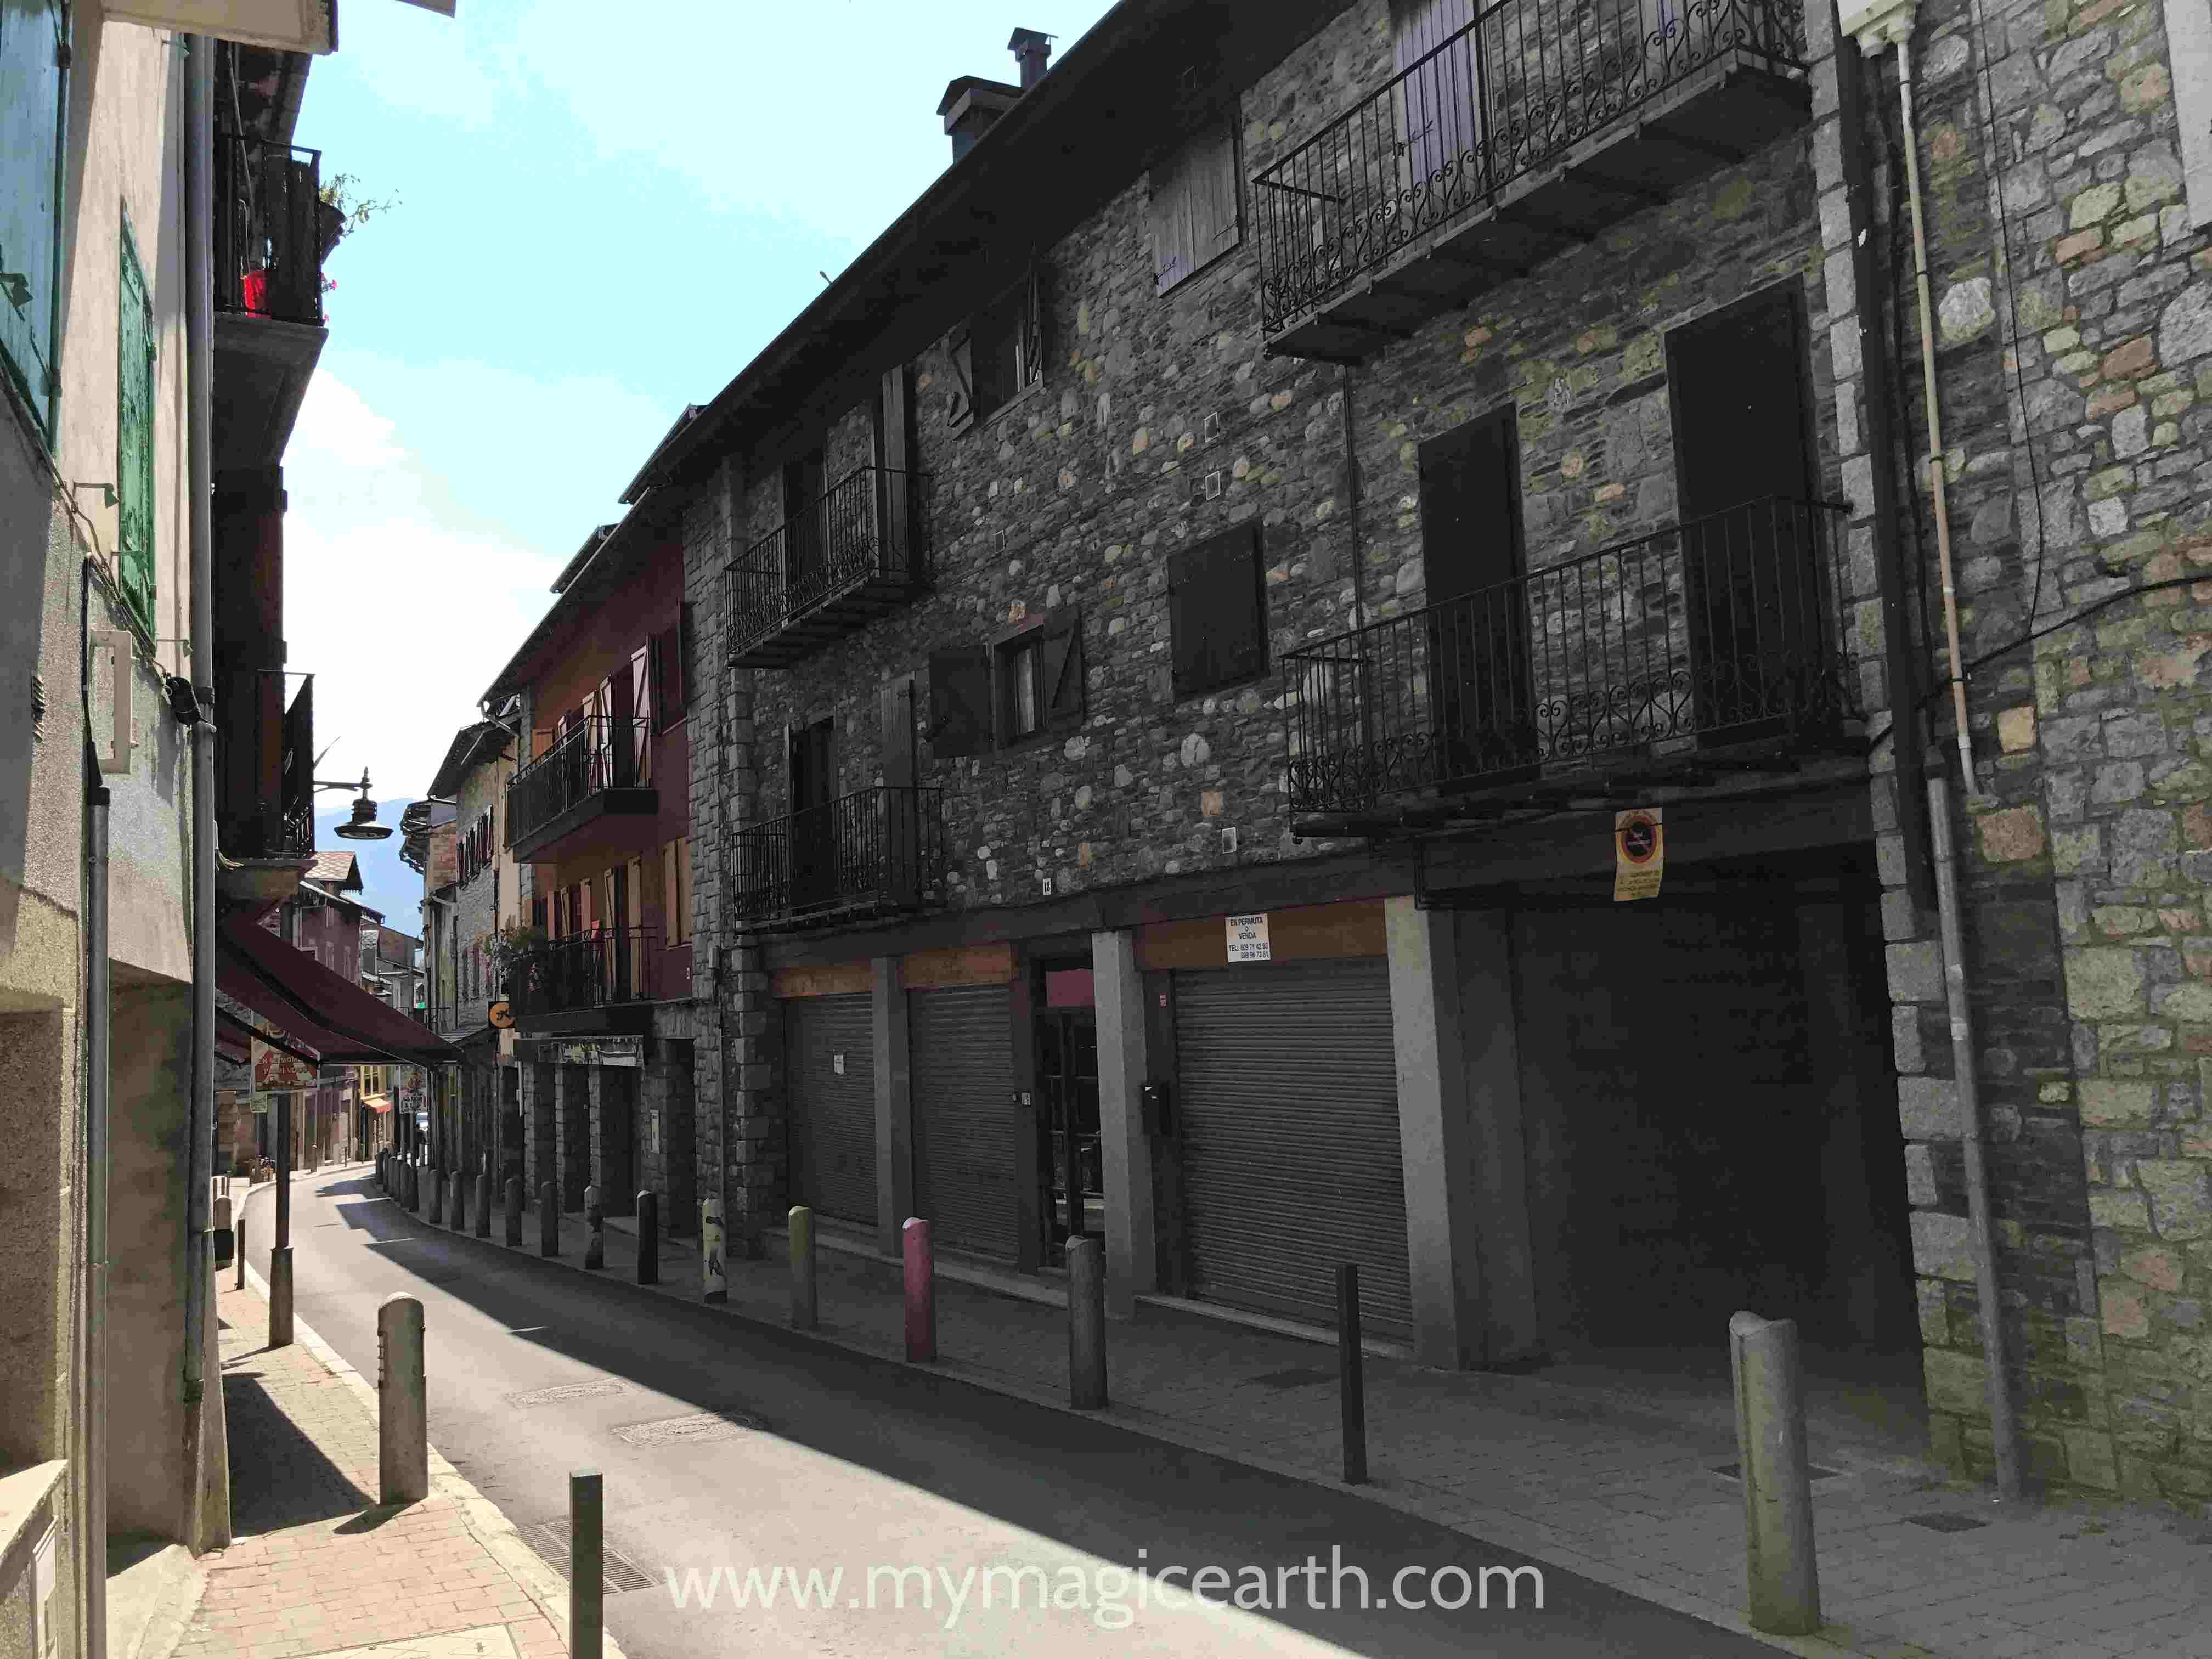 The main street in LLivia, Spain